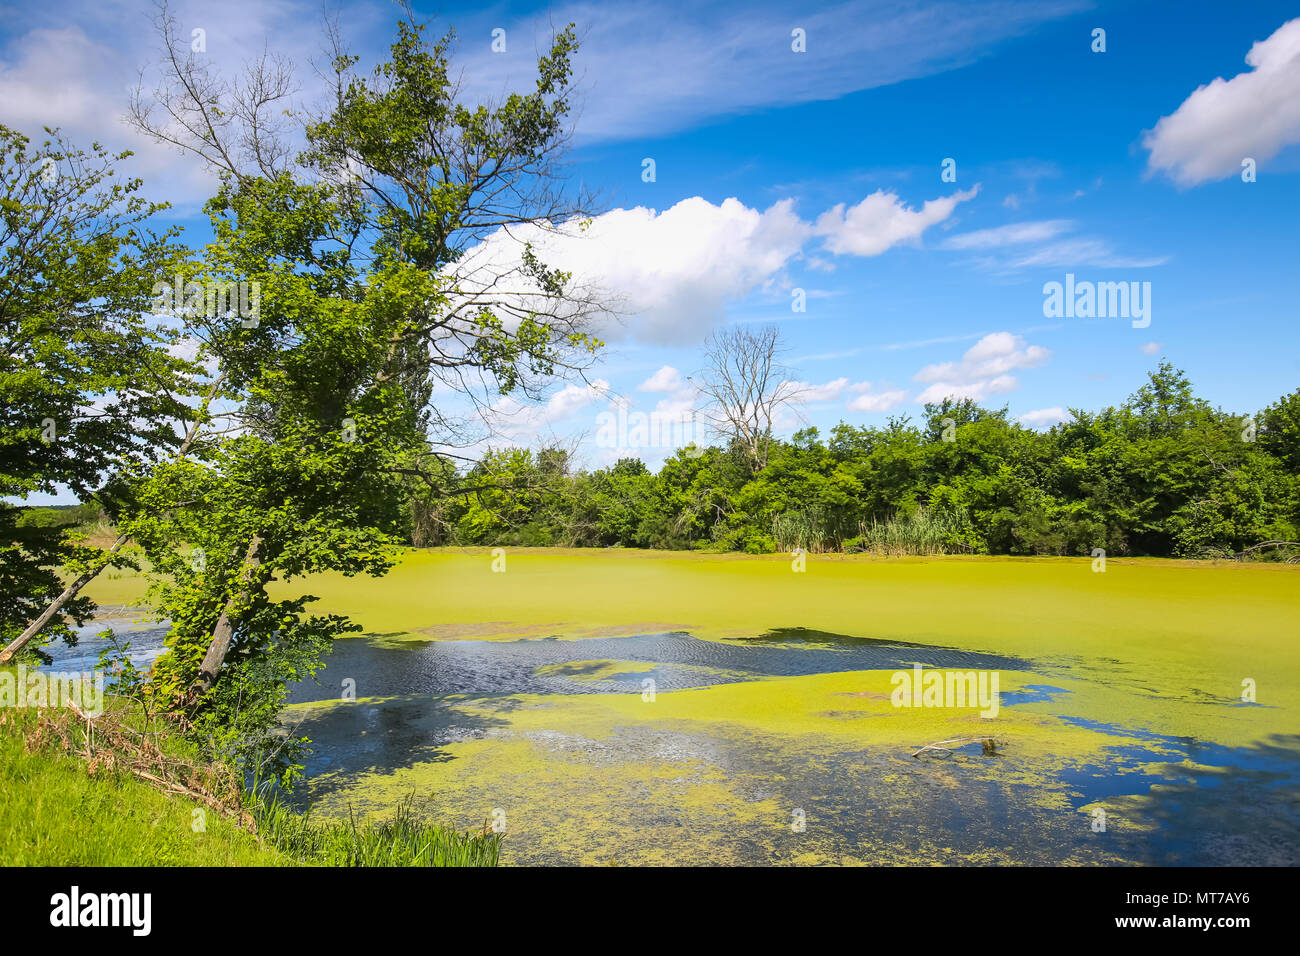 A view of the green river Bosut covered with algal blooms in Vinkovci, Croatia. - Stock Image